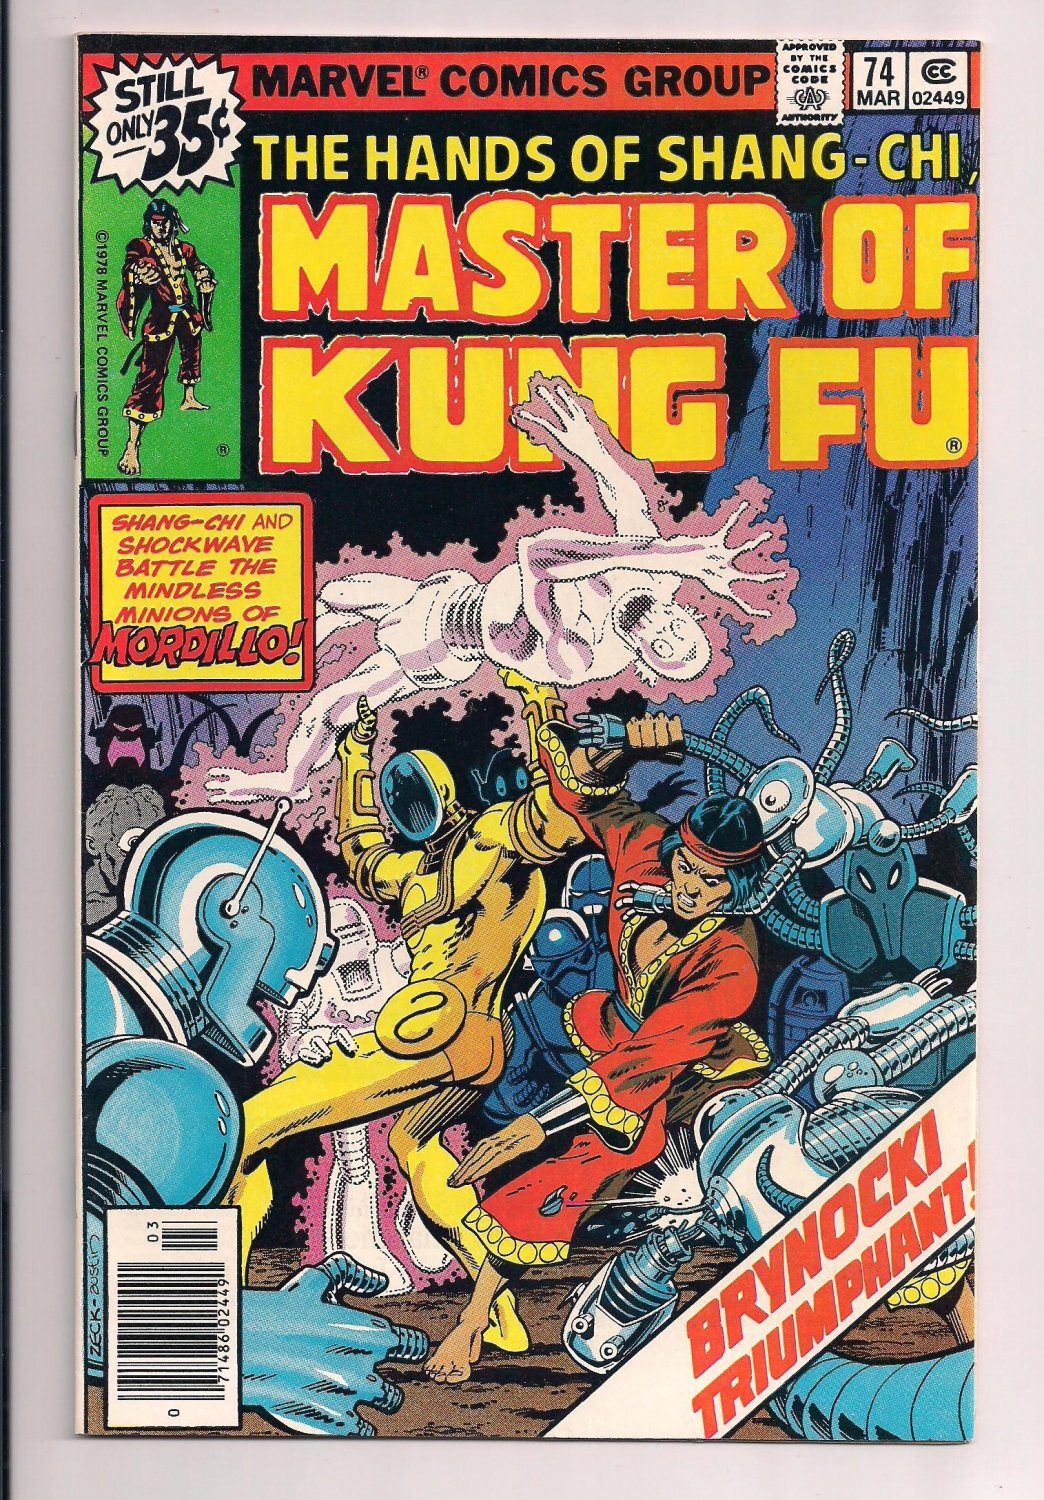 Shang-Chi, Master of Kung Fu #74 a (1979) very fine condition or better.